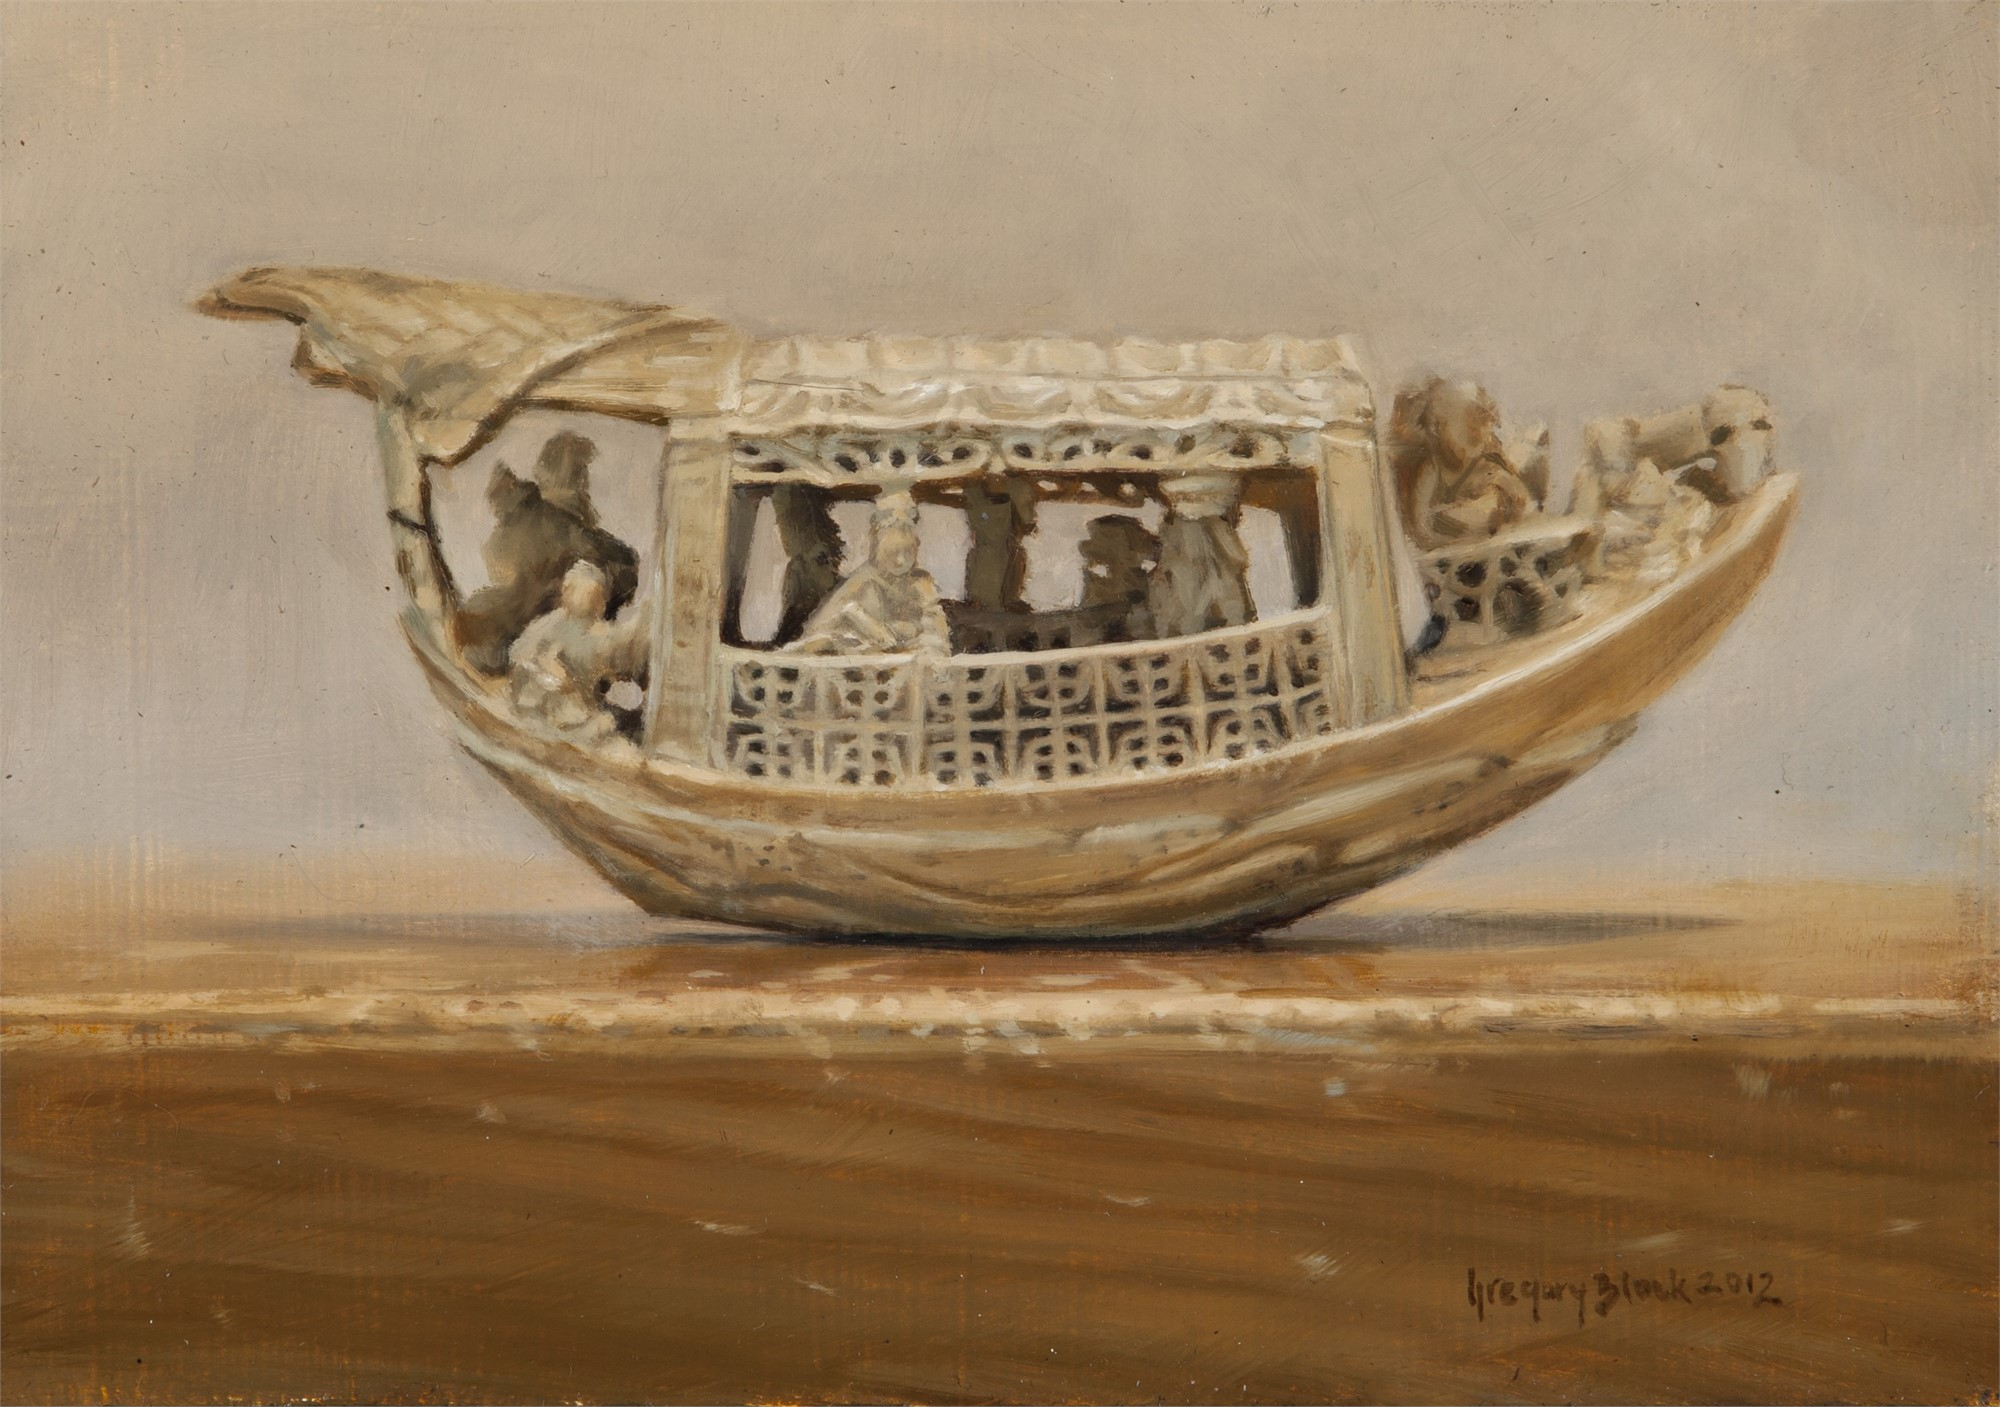 Ivory Boat by Gregory Block